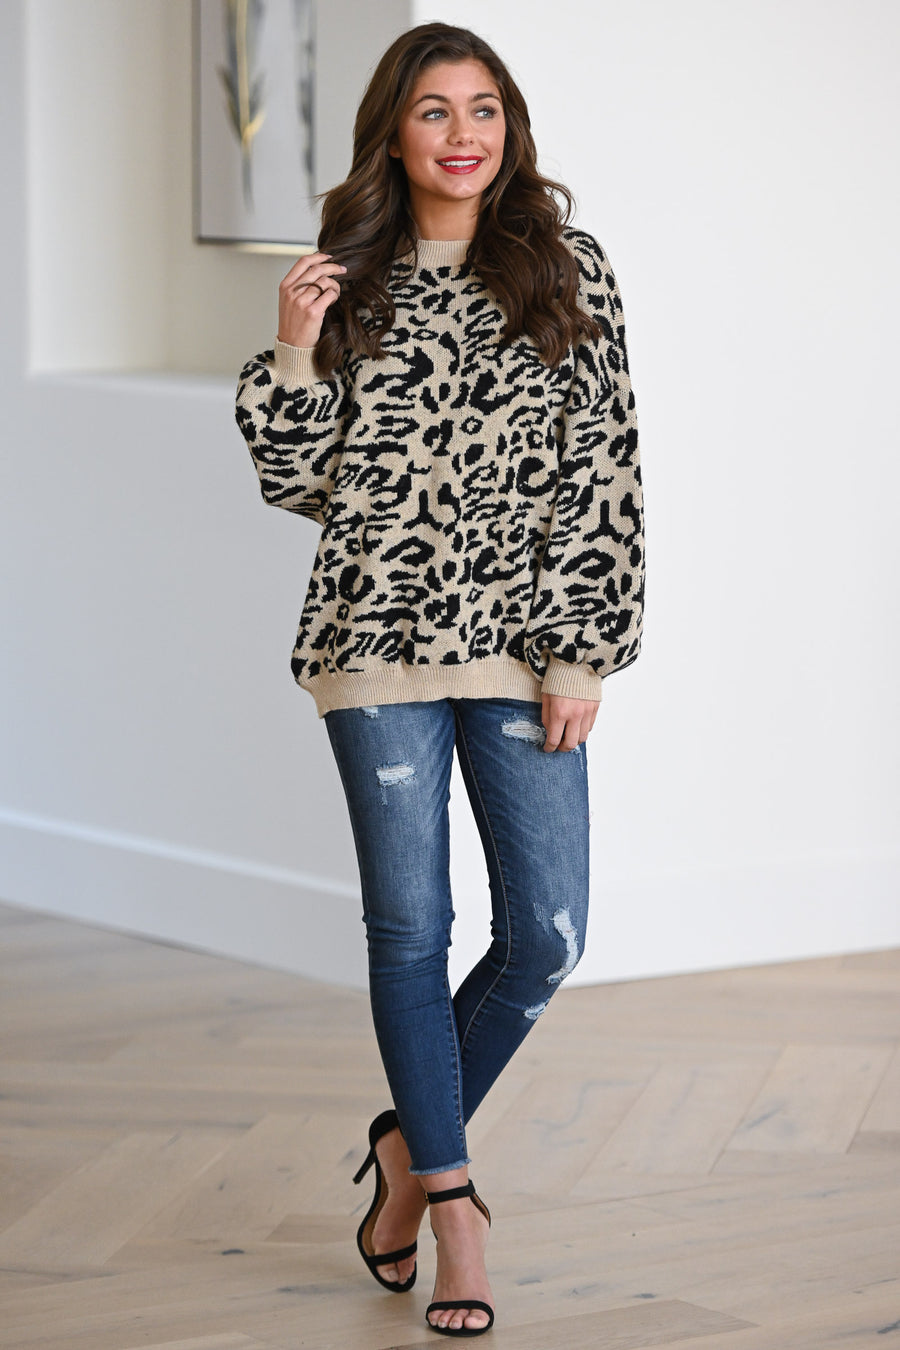 Feisty Fashionista Leopard Sweater - Tan women's animal print sweater, Closet Candy Boutique 3